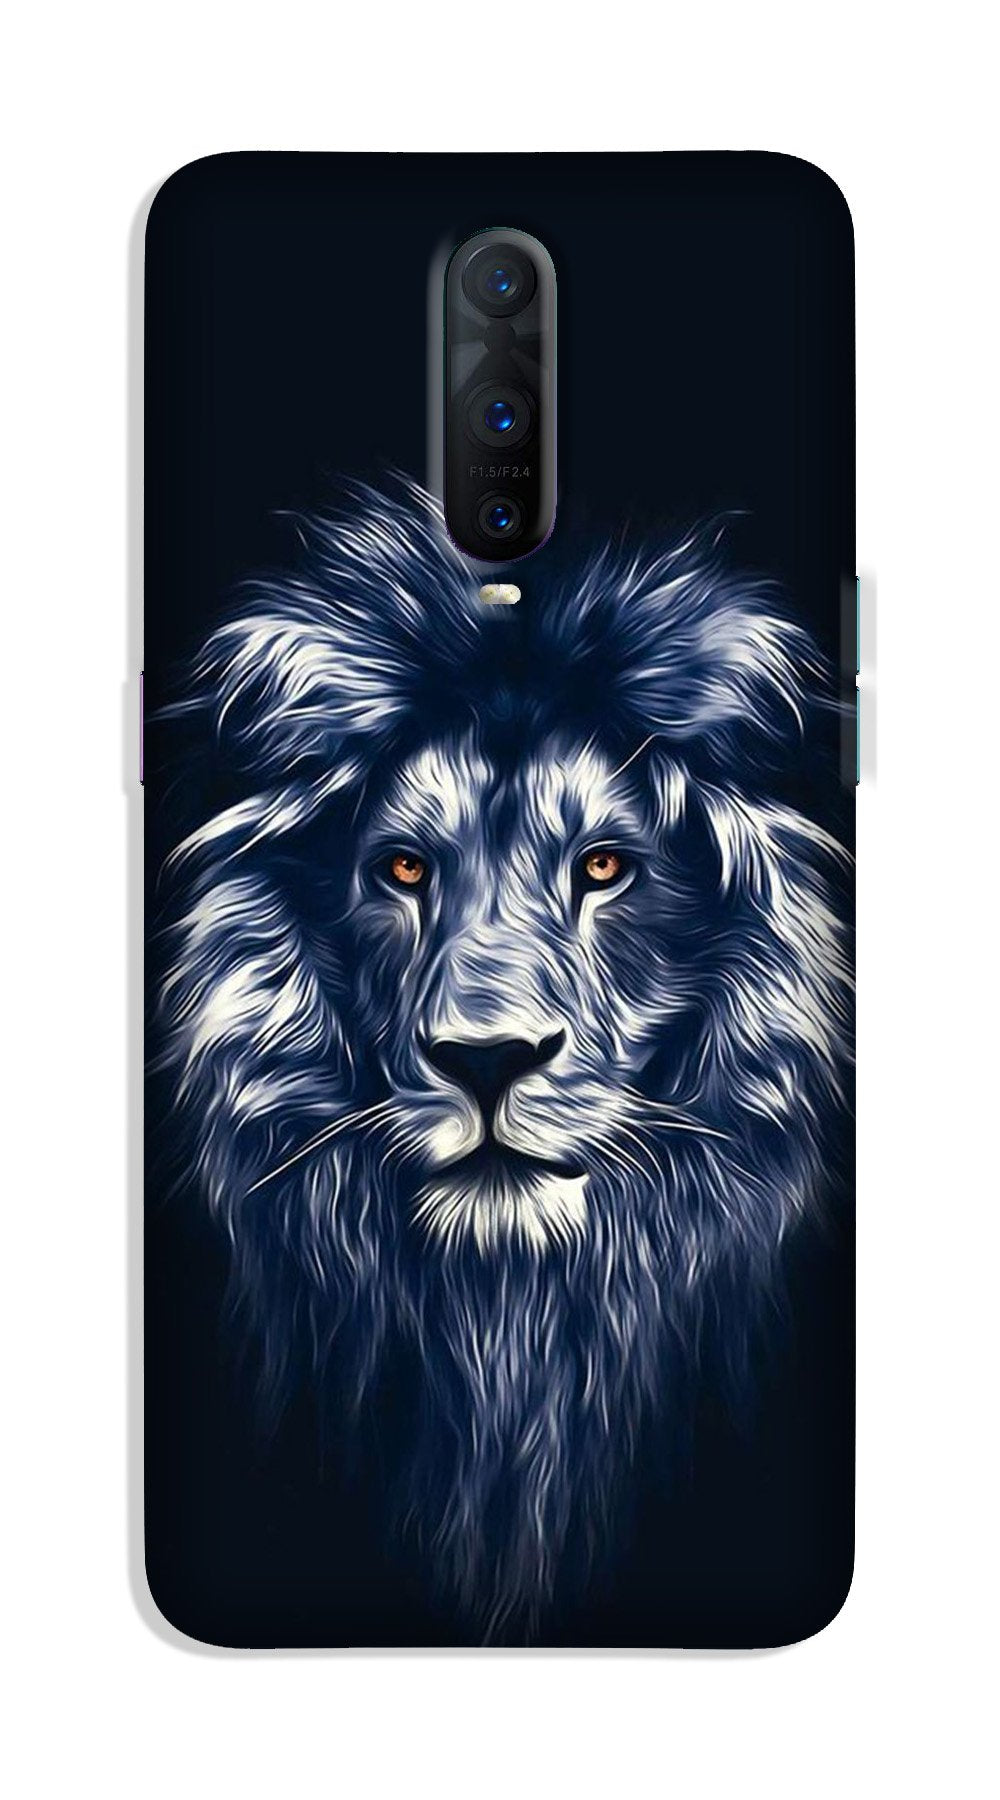 Lion  Case for OnePlus 7 Pro (Design No. 281)